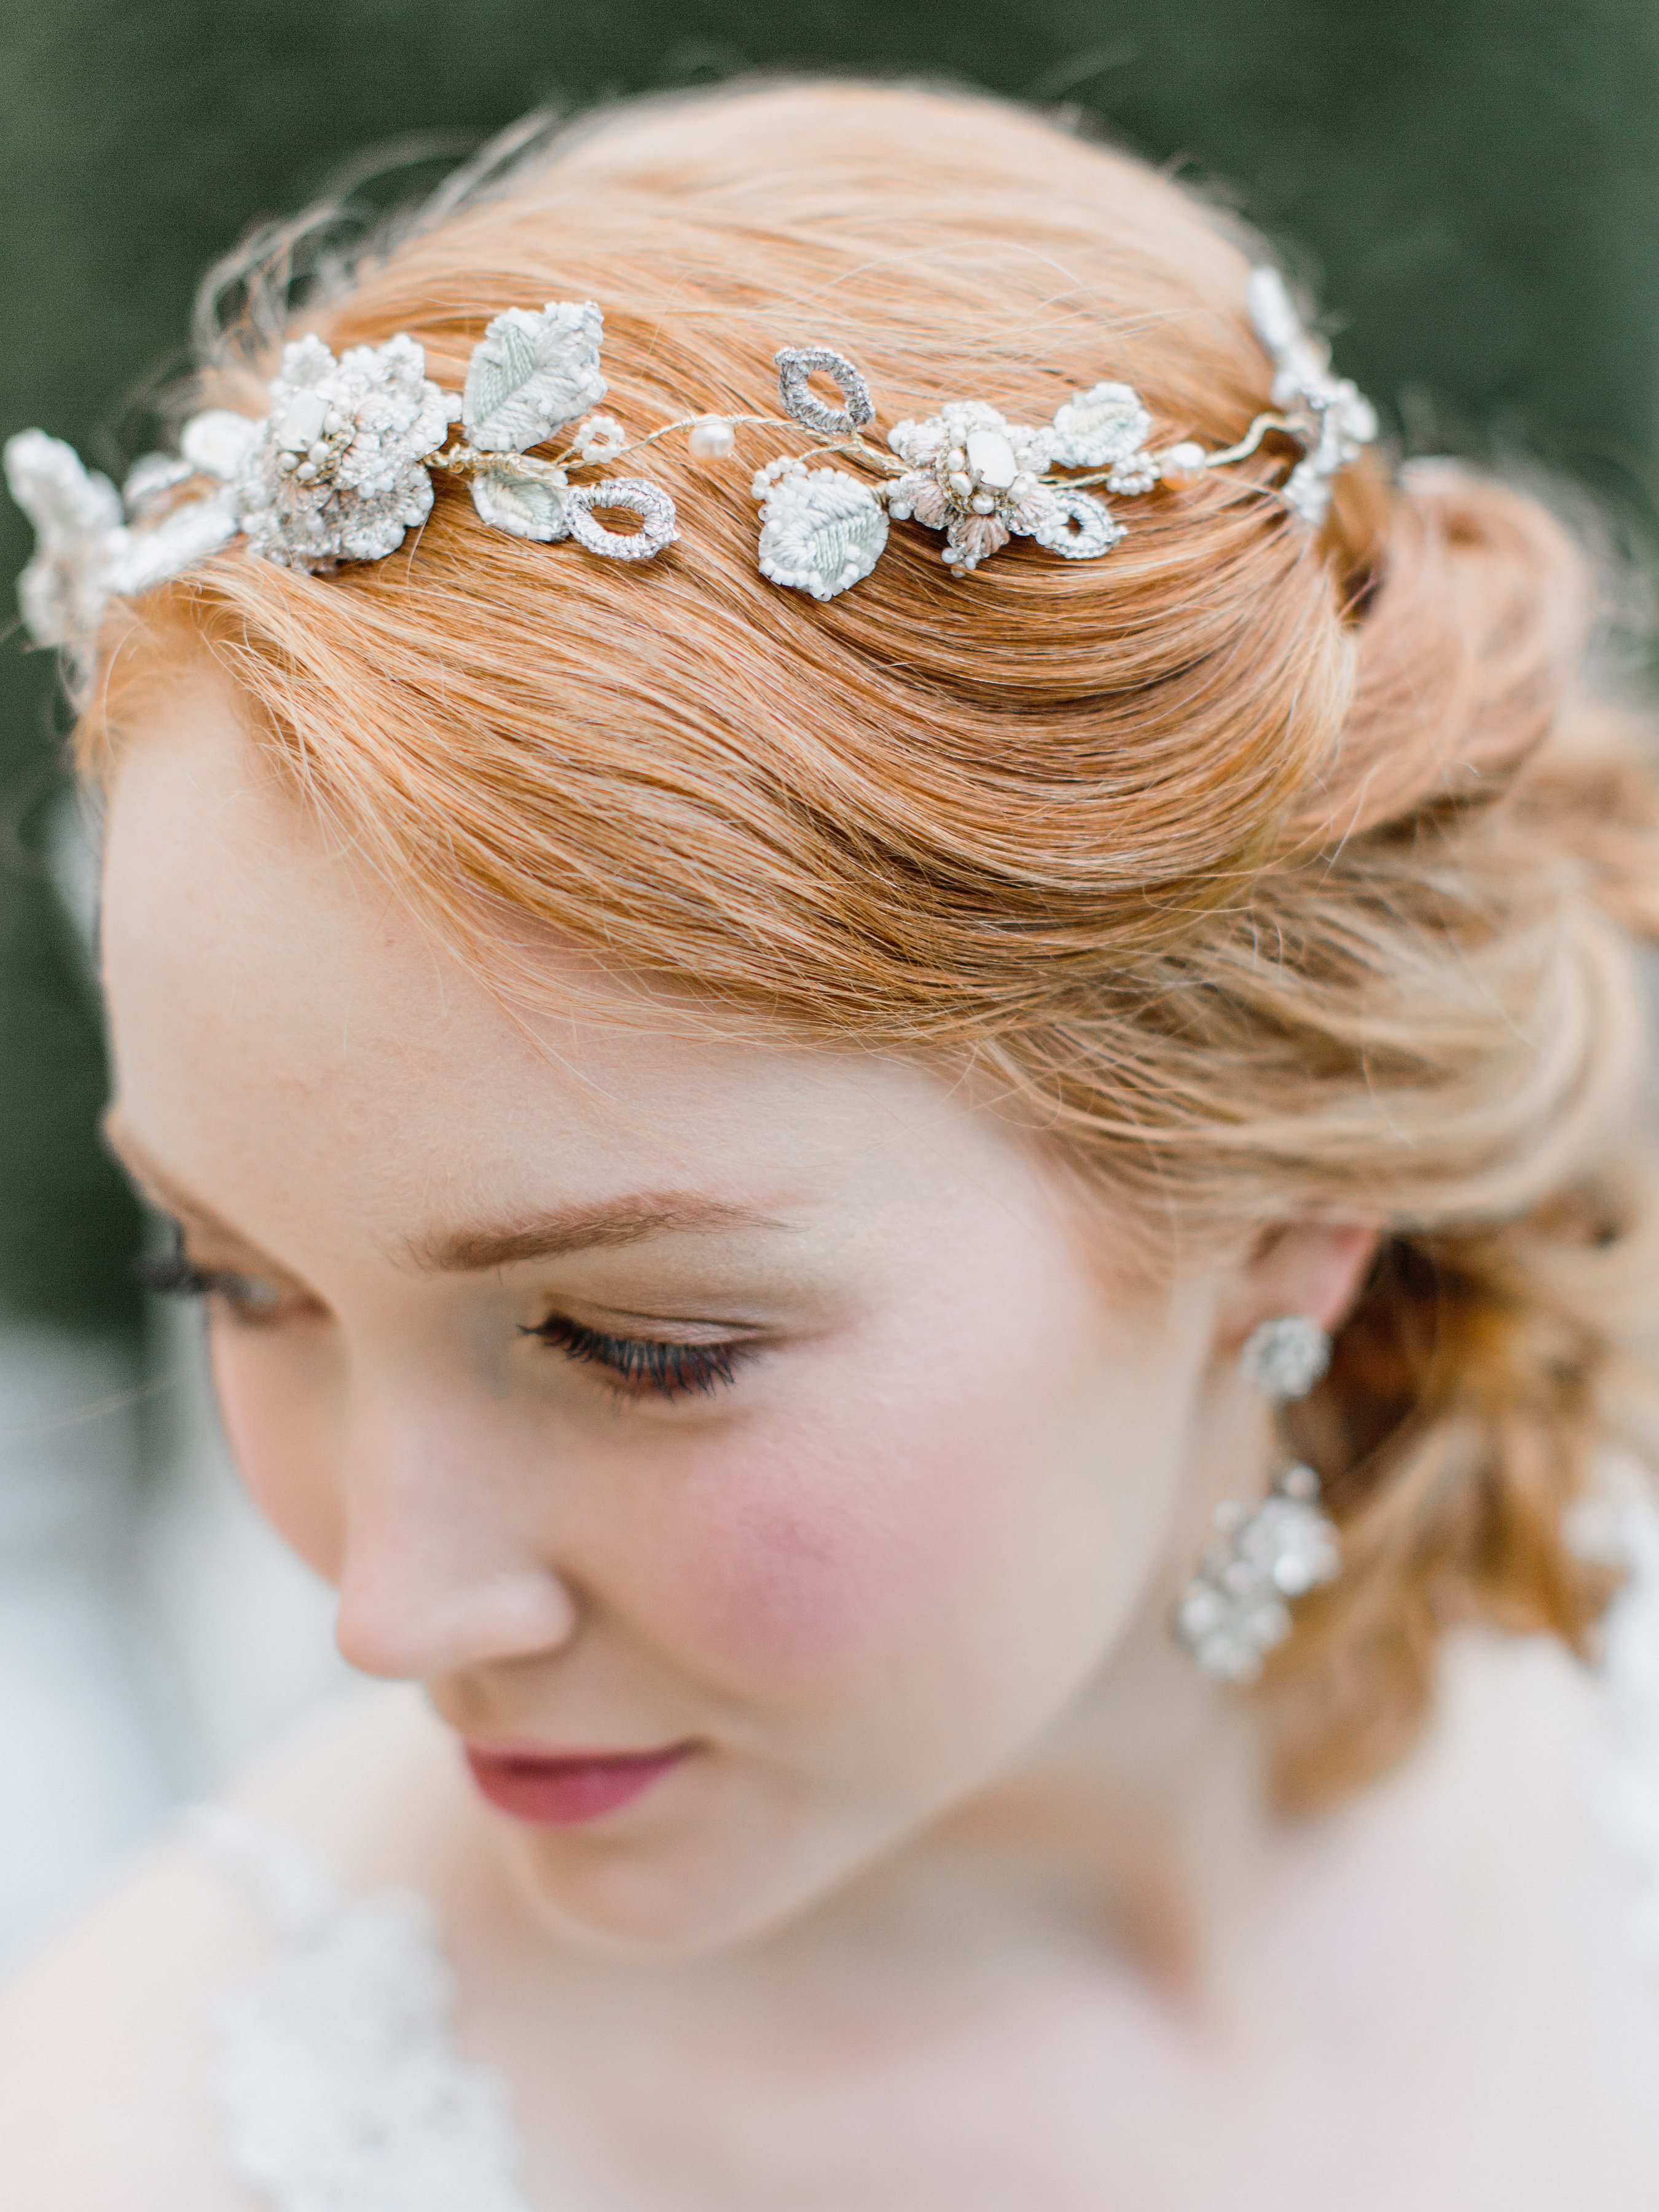 Damask Rose Bridal Tiara Edera